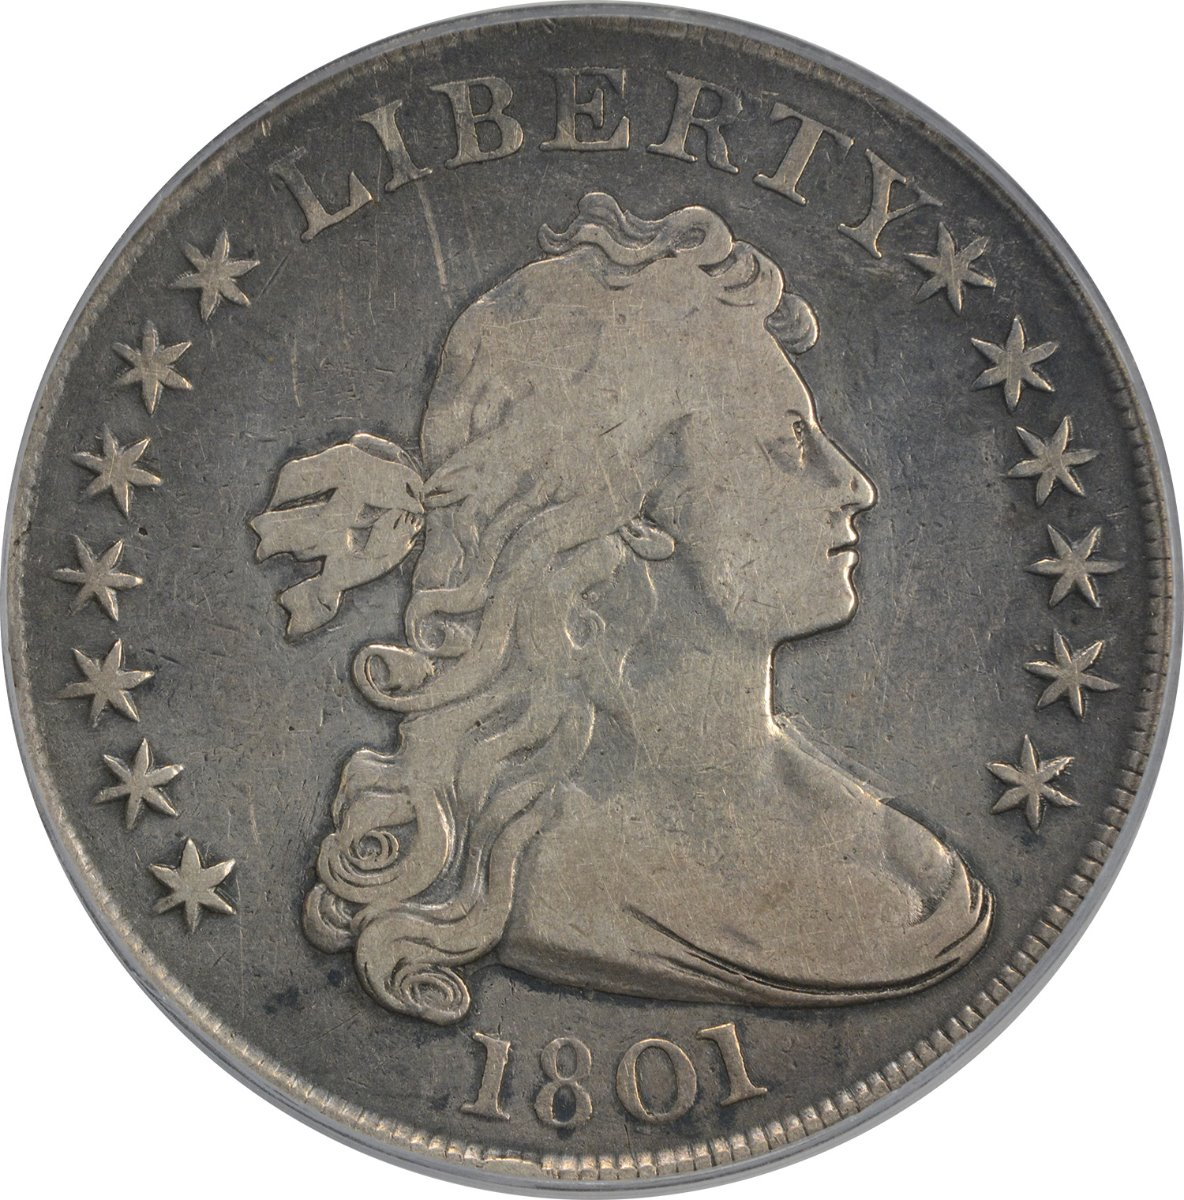 Bust Silver Dollars